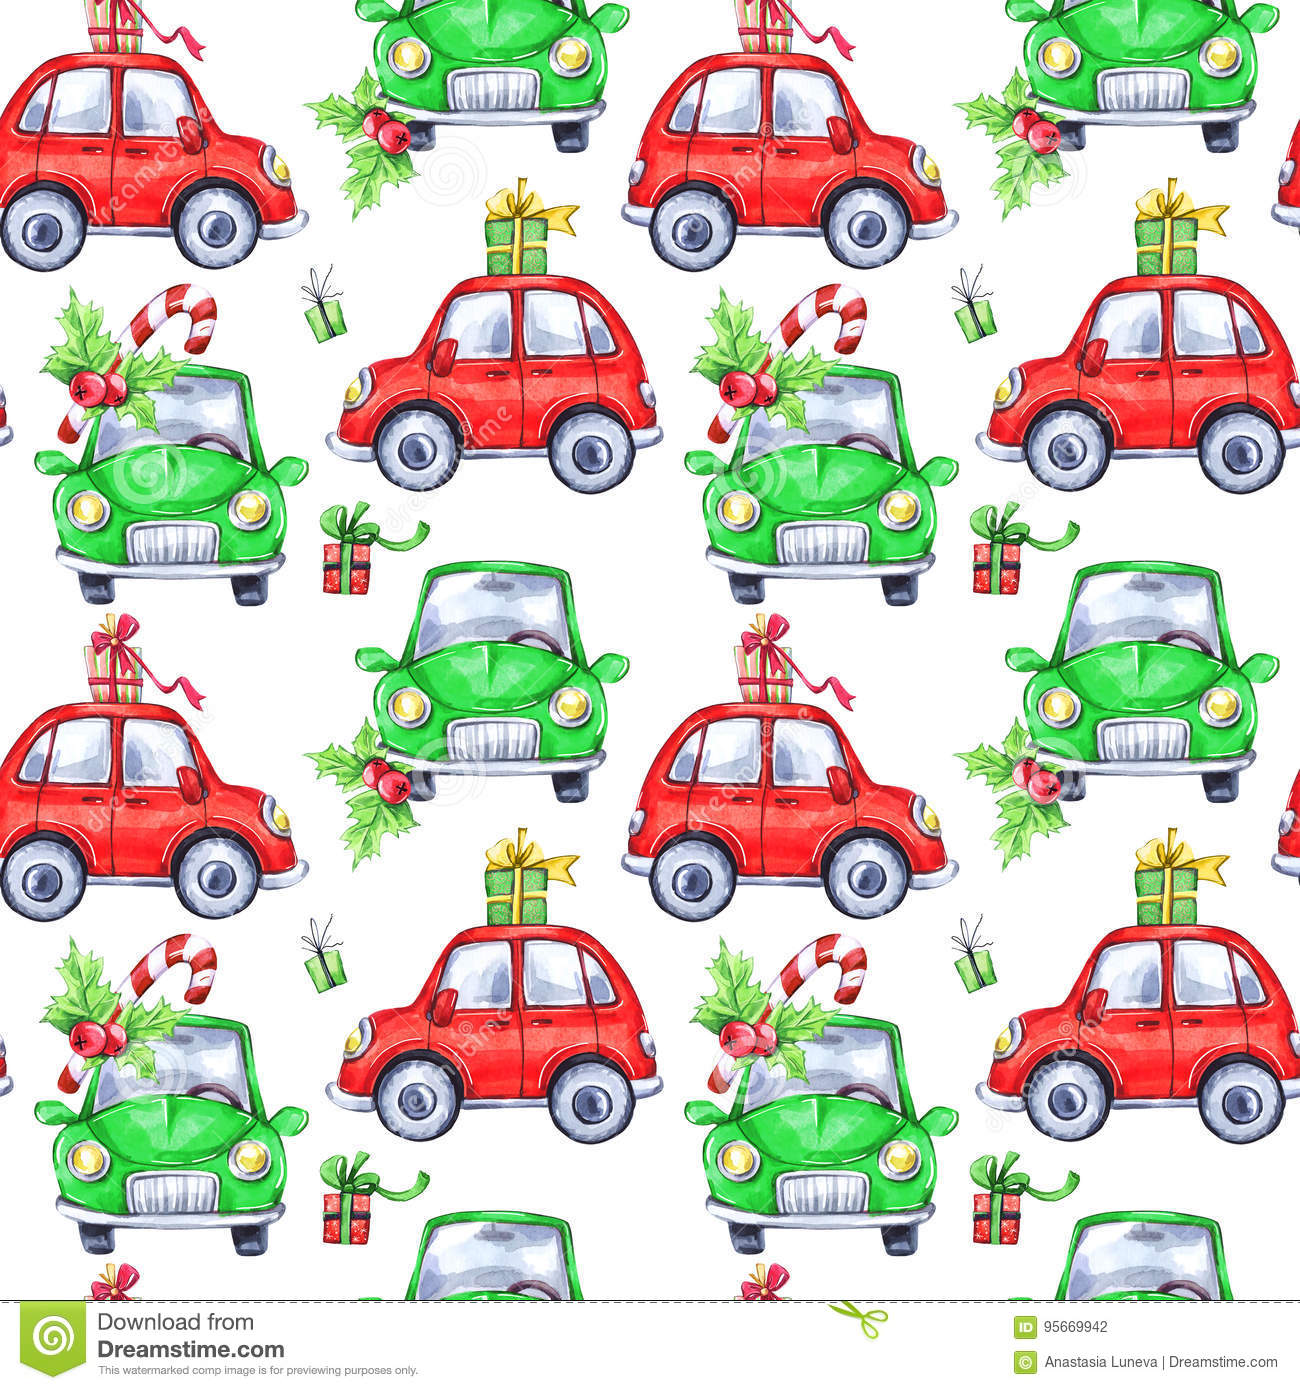 Watercolor seamless pattern with cartoon holidays cars and gifts. New Year. Celebration illustration. Merry Christmas.